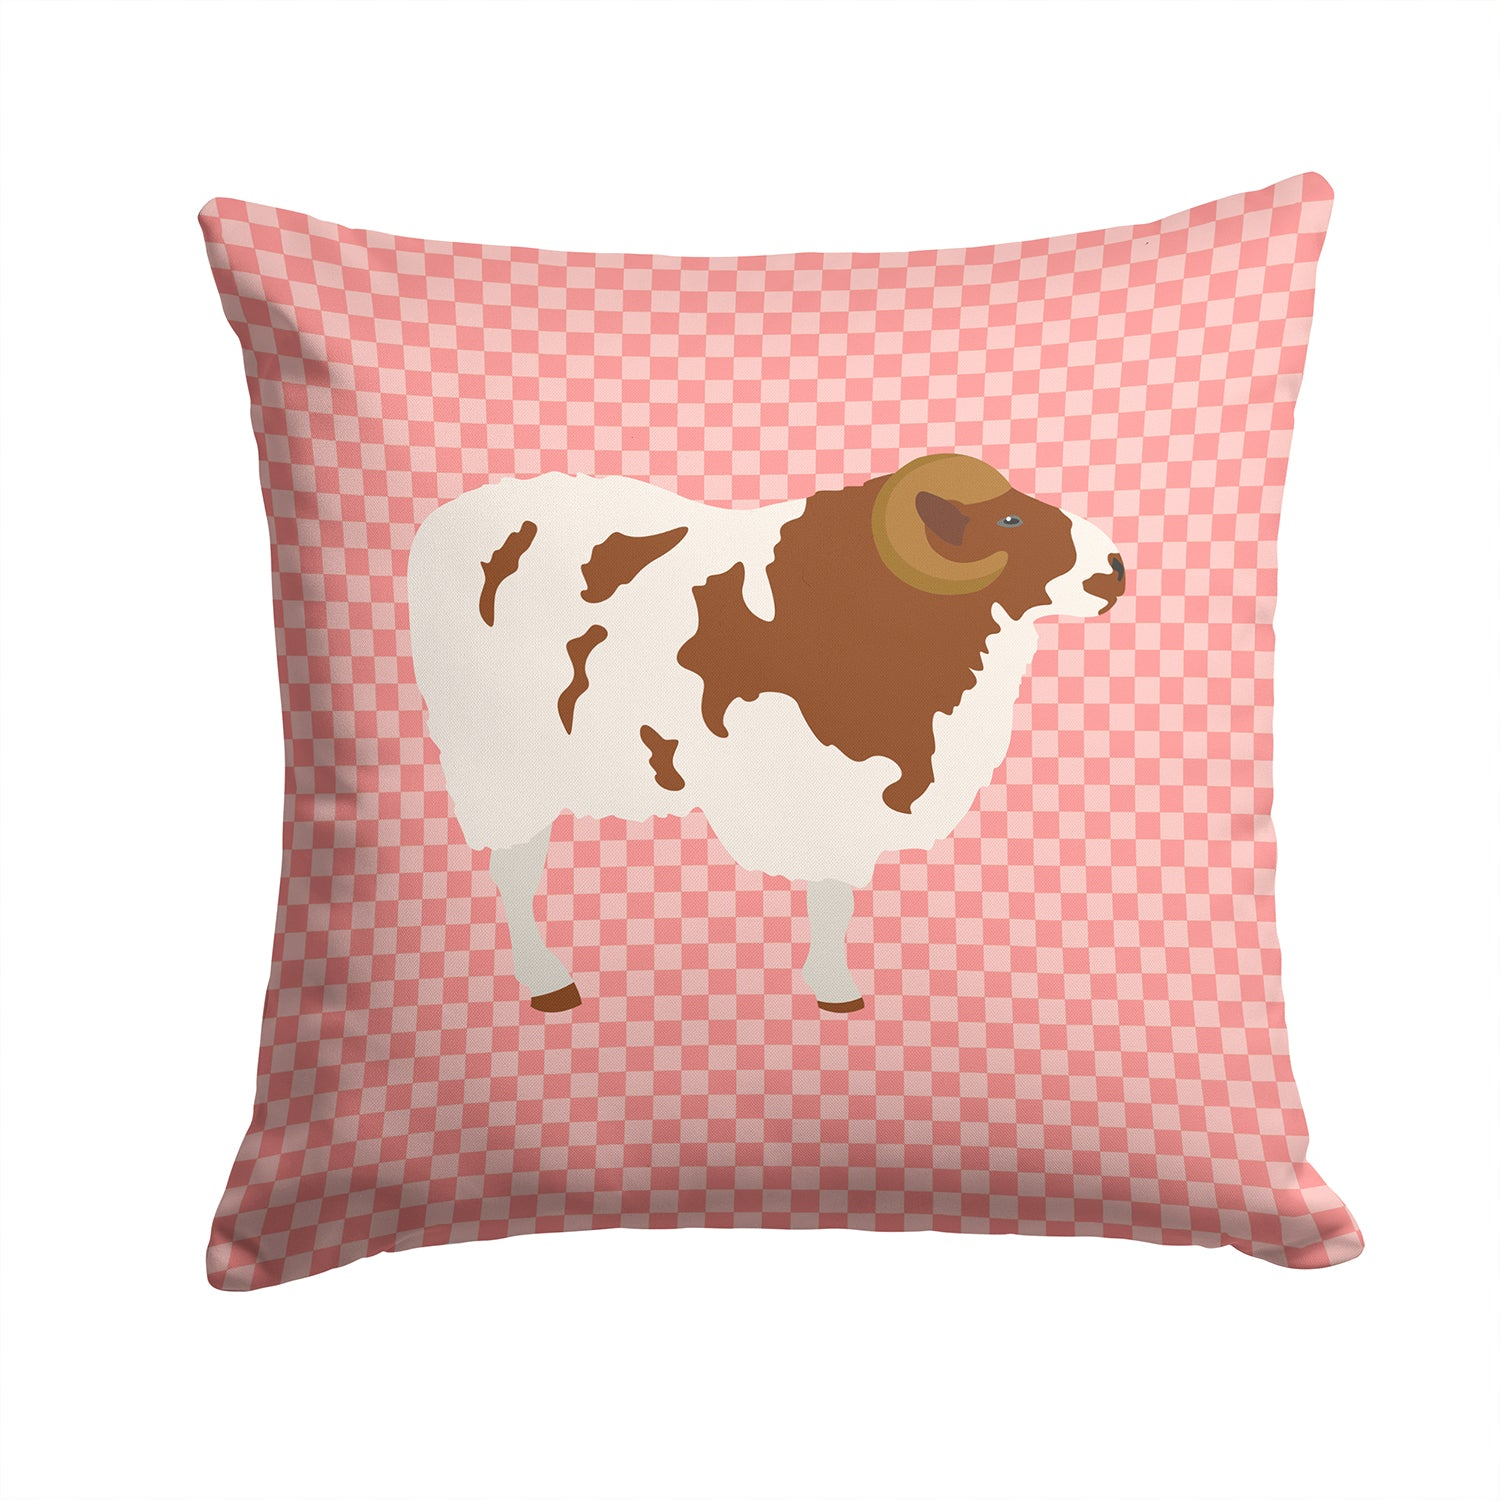 Jacob Sheep Pink Check Fabric Decorative Pillow BB7975PW1414 by Caroline's Treasures